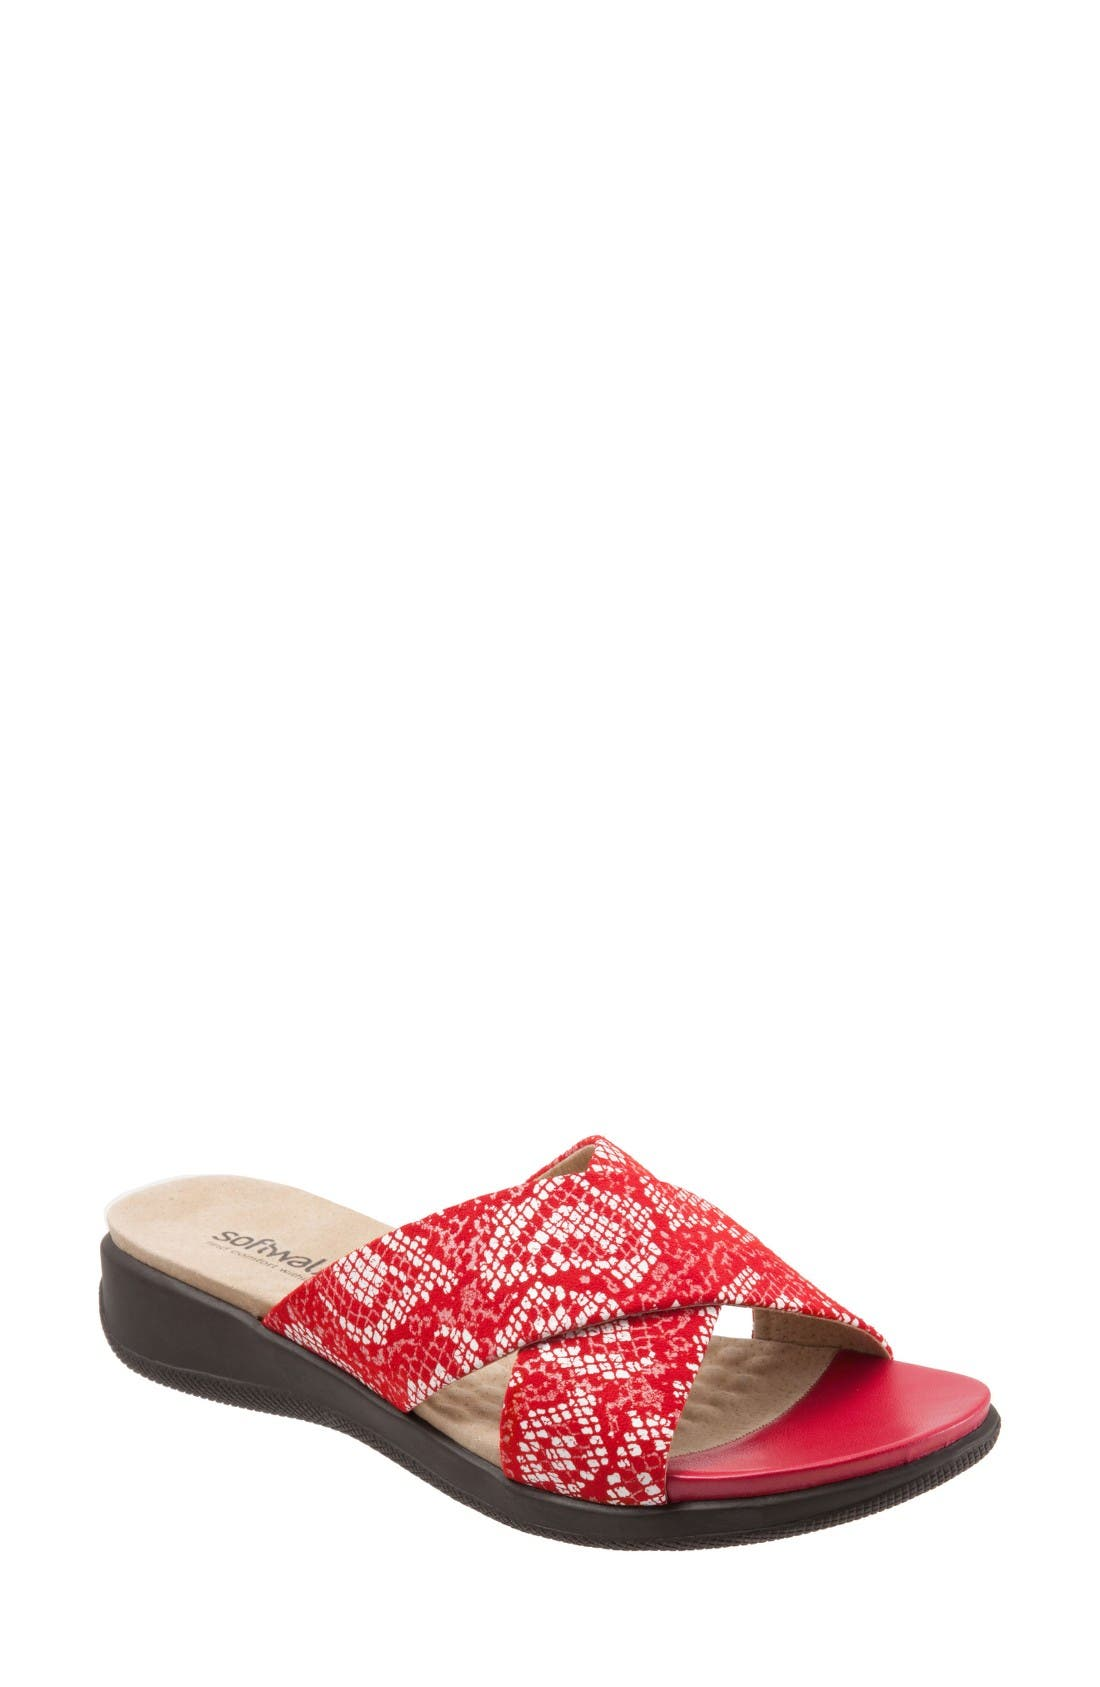 Alternate Image 1 Selected - SoftWalk® 'Tillman' Leather Cross Strap Slide Sandal (Women)